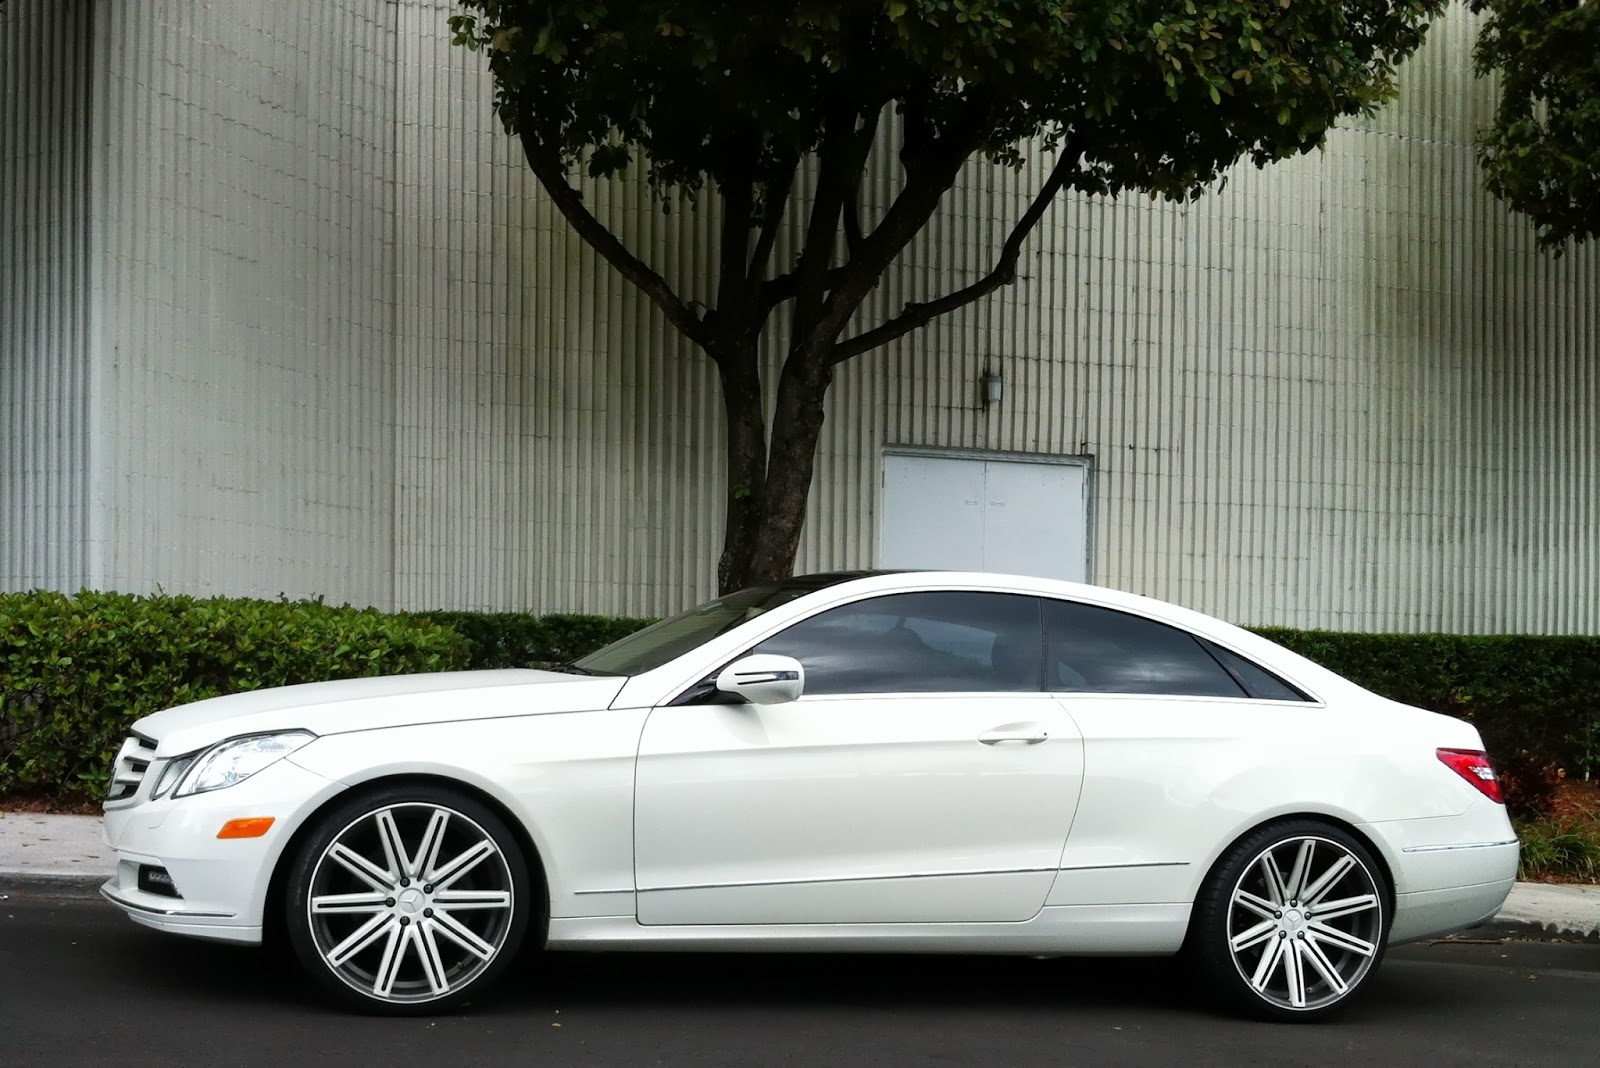 White Rims Mercedes E550 Ford E 150 Wiring Diagram Manuals Pictures Of